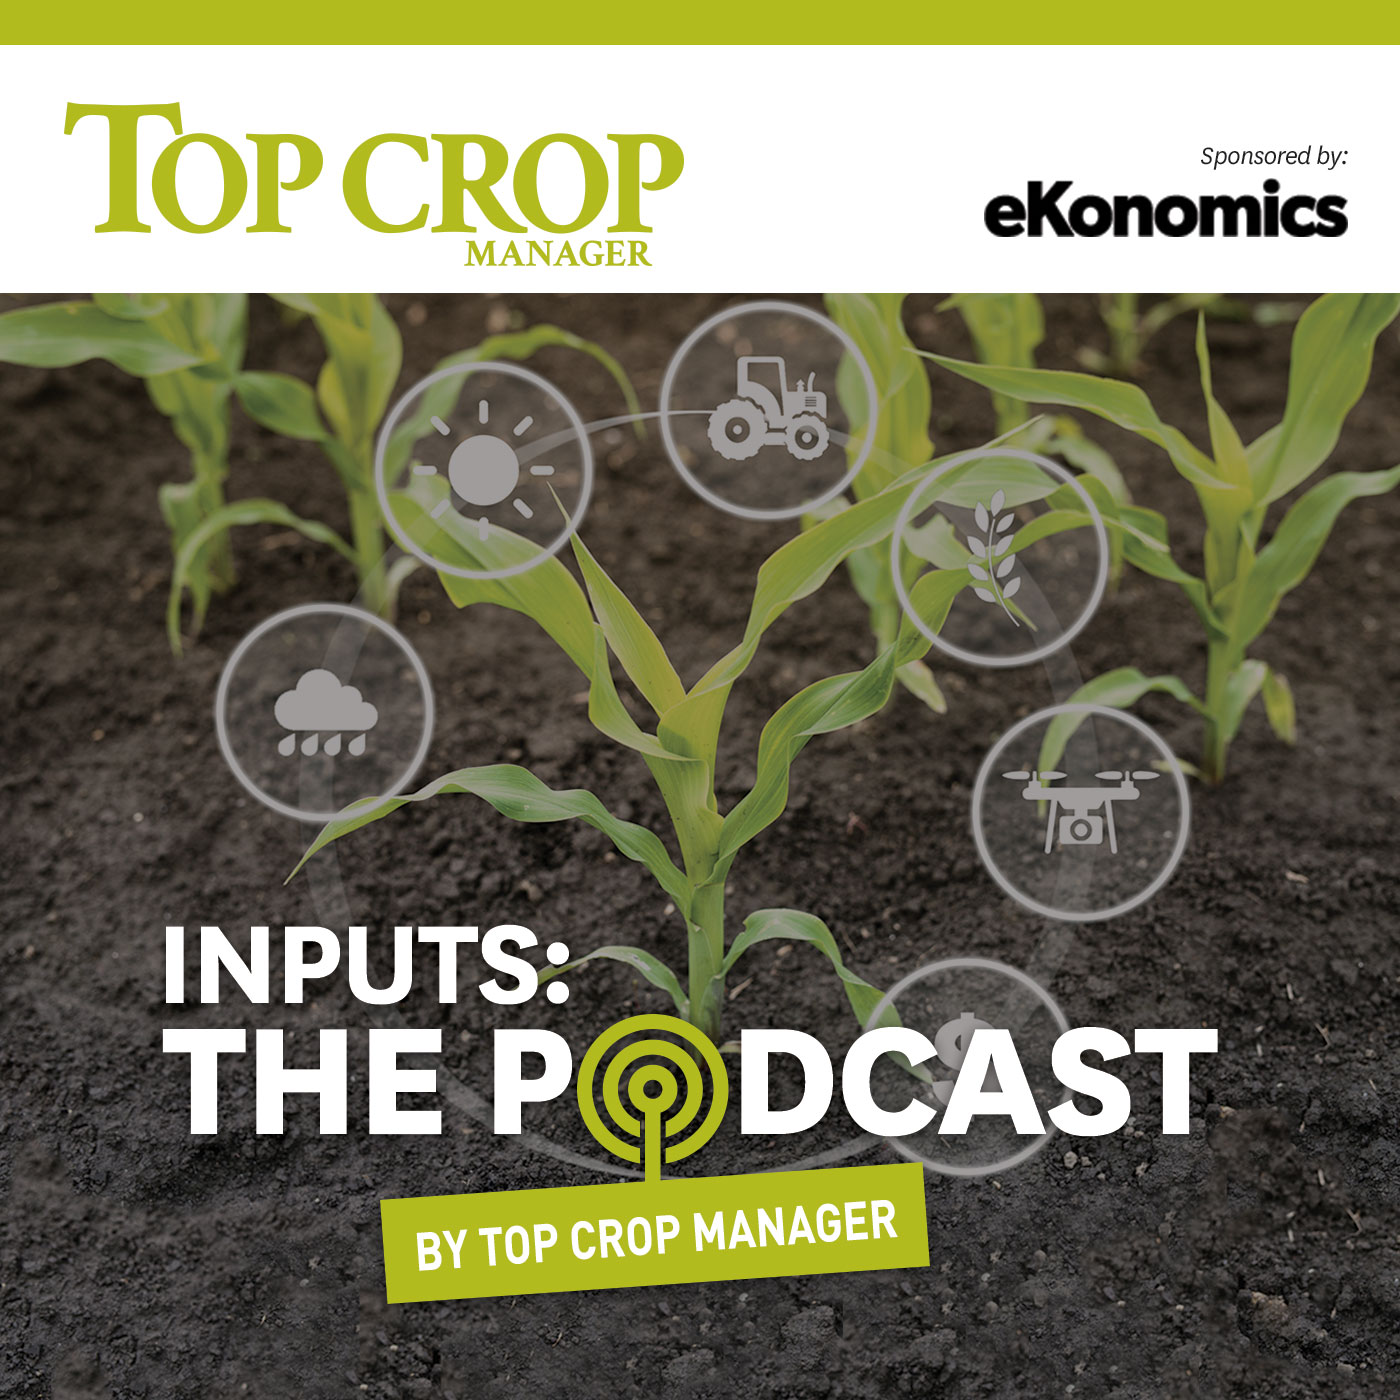 Artwork for podcast Inputs - by Top Crop Manager